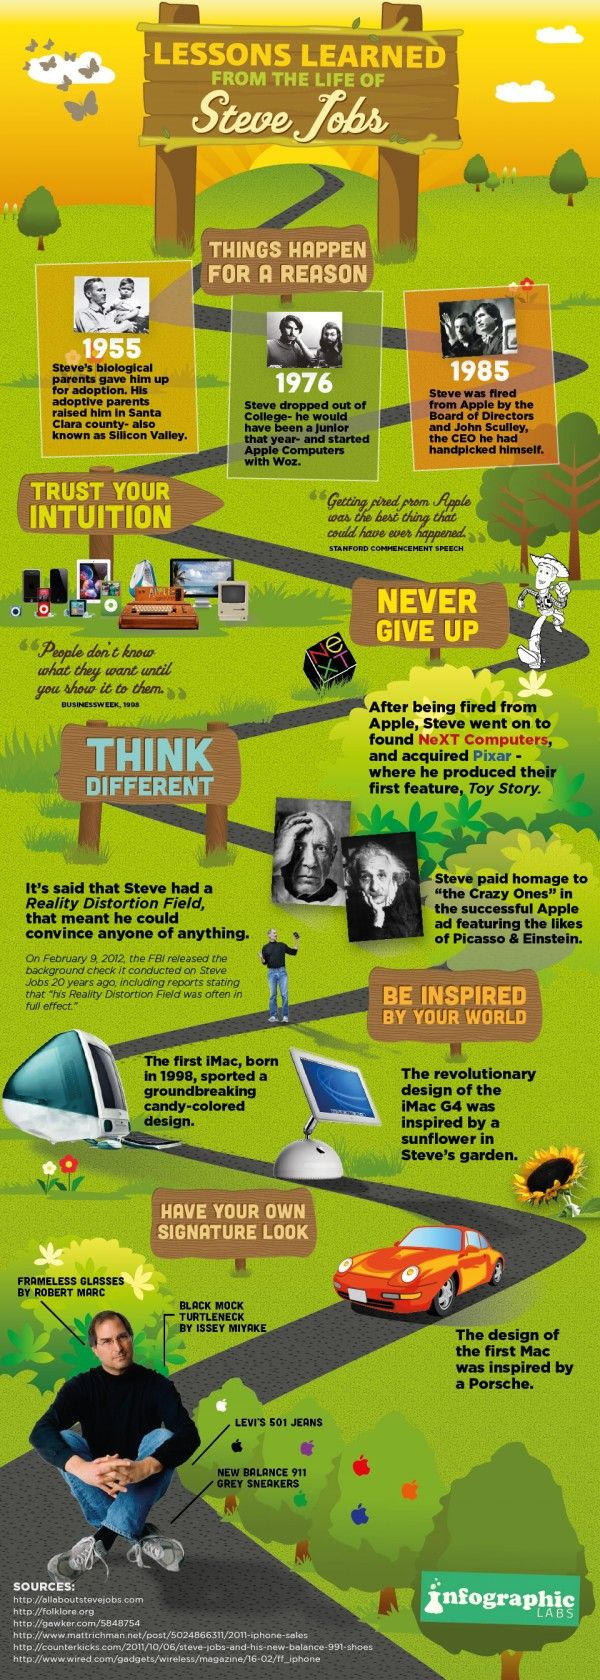 Lessons learned from the life of Steve Jobs (I always thought I would meet him) via BuzzingUp.com